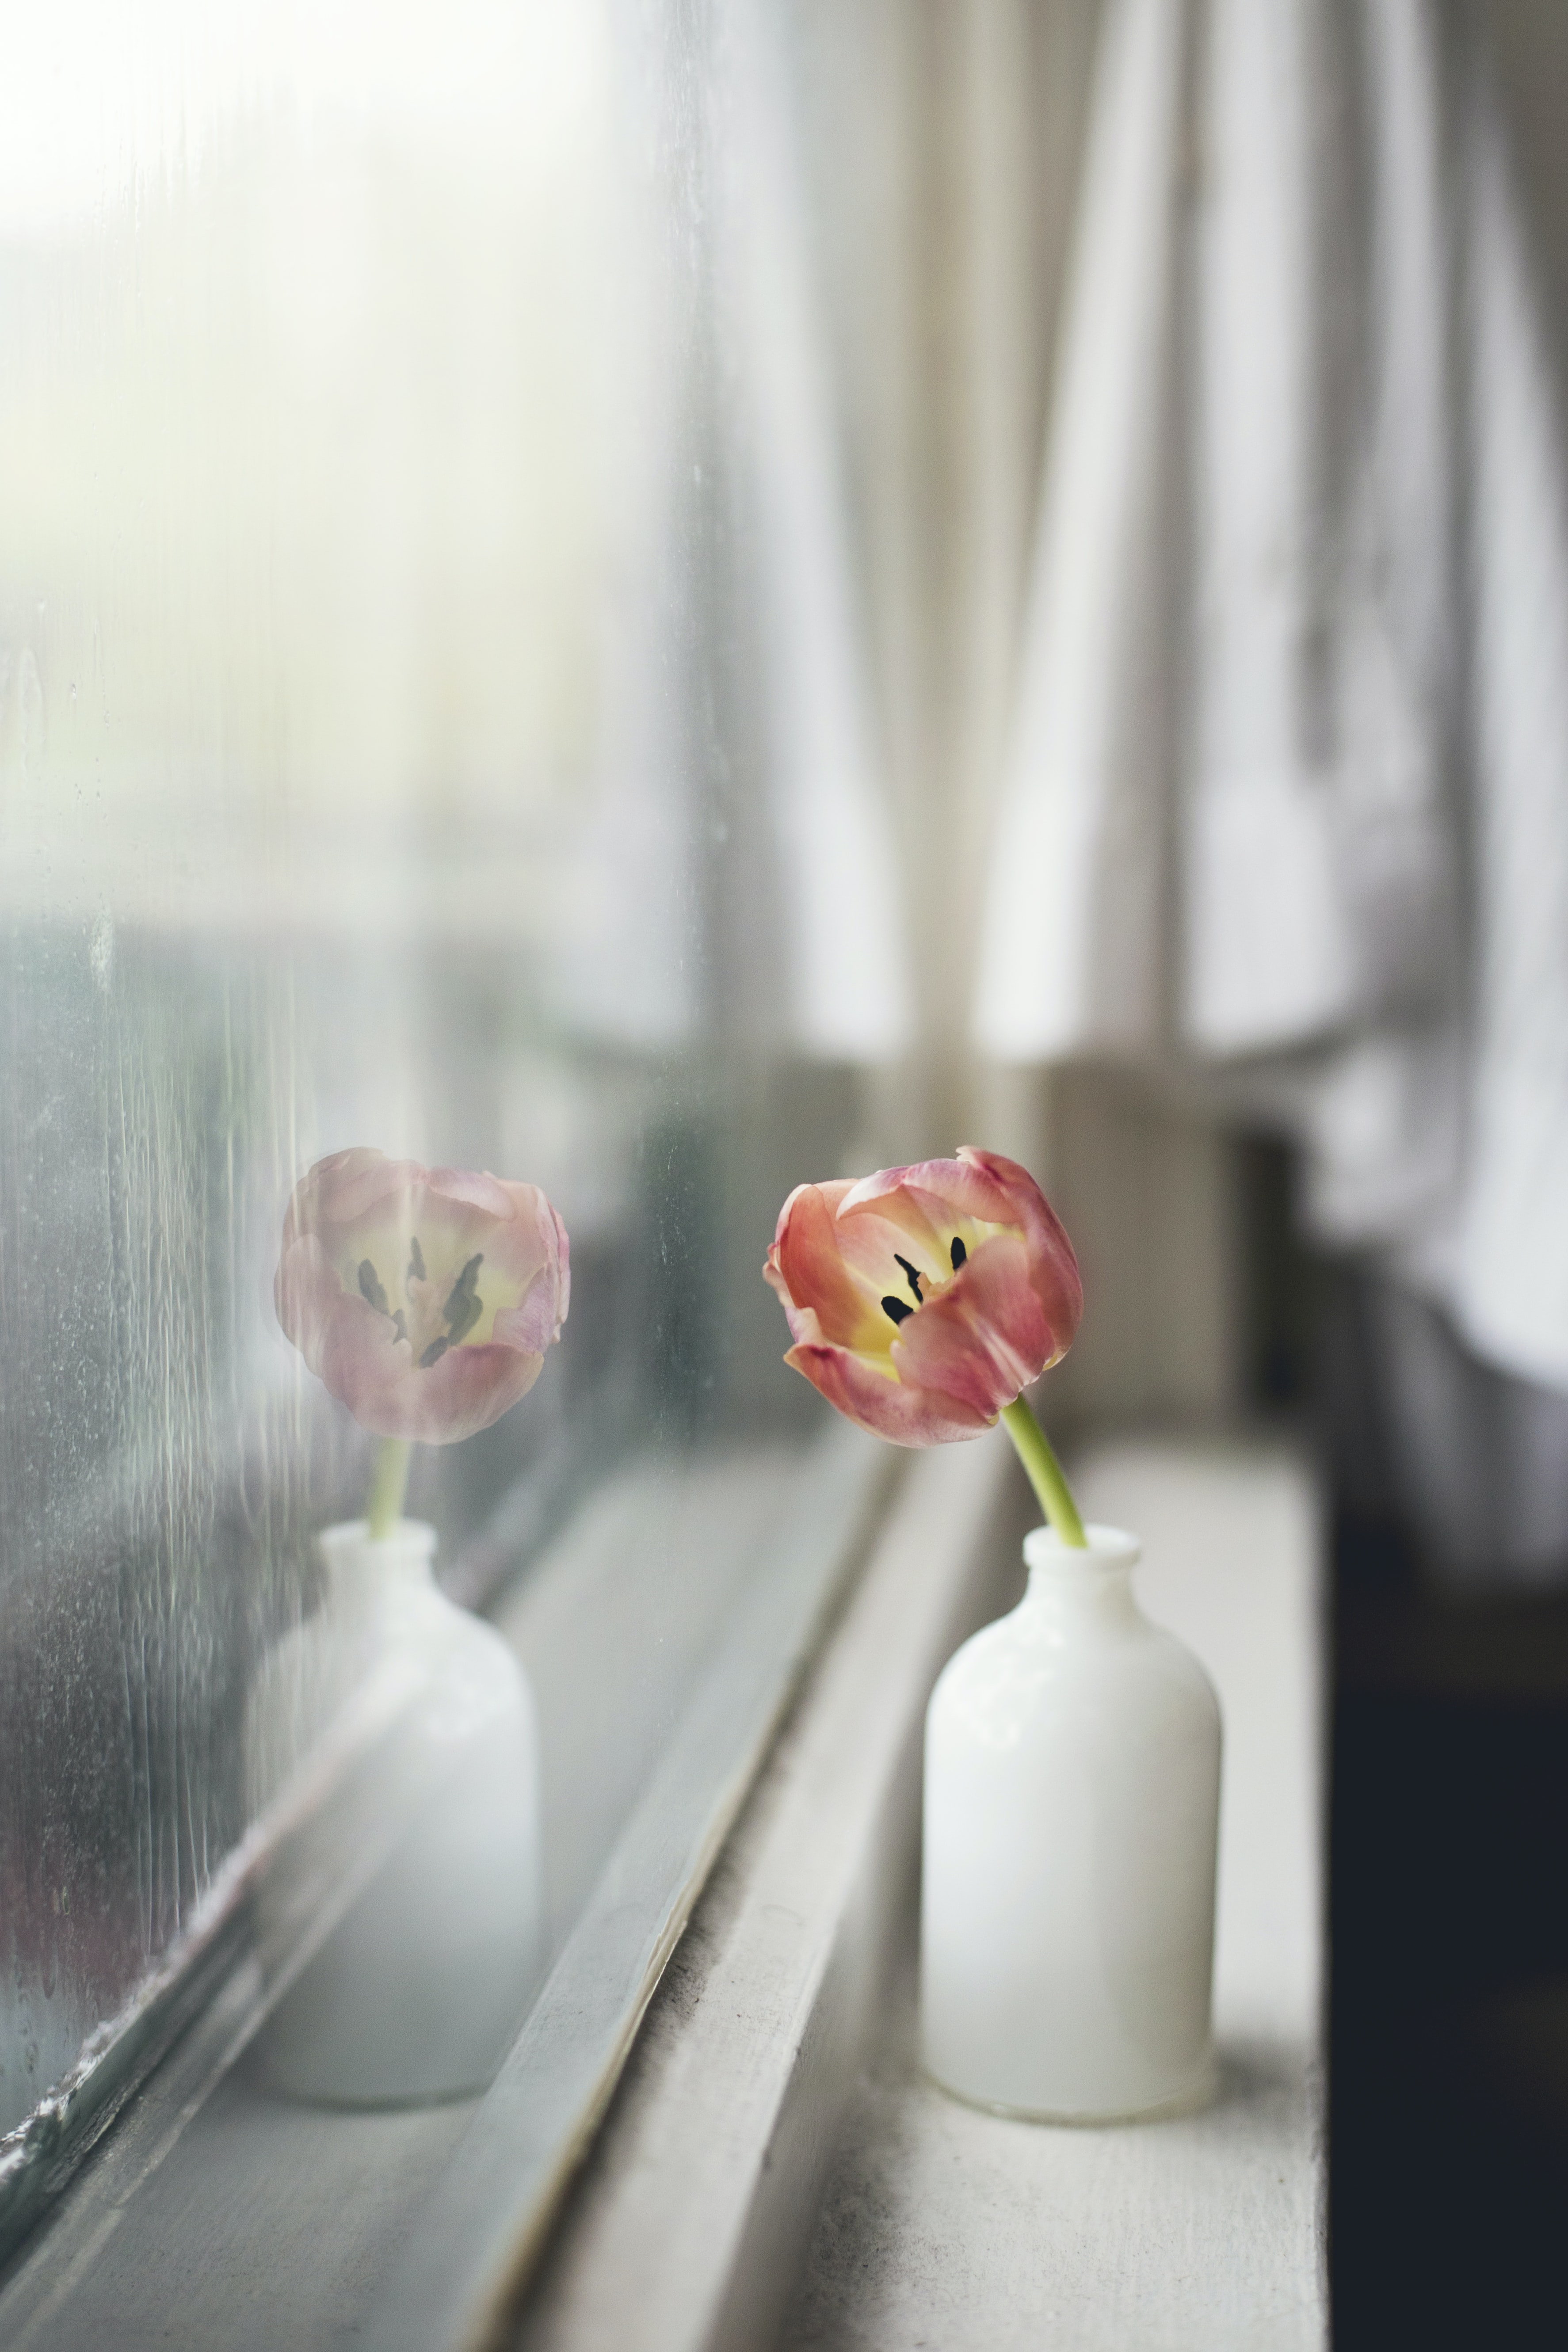 A faint red tulip in a small white vase on a windowsill